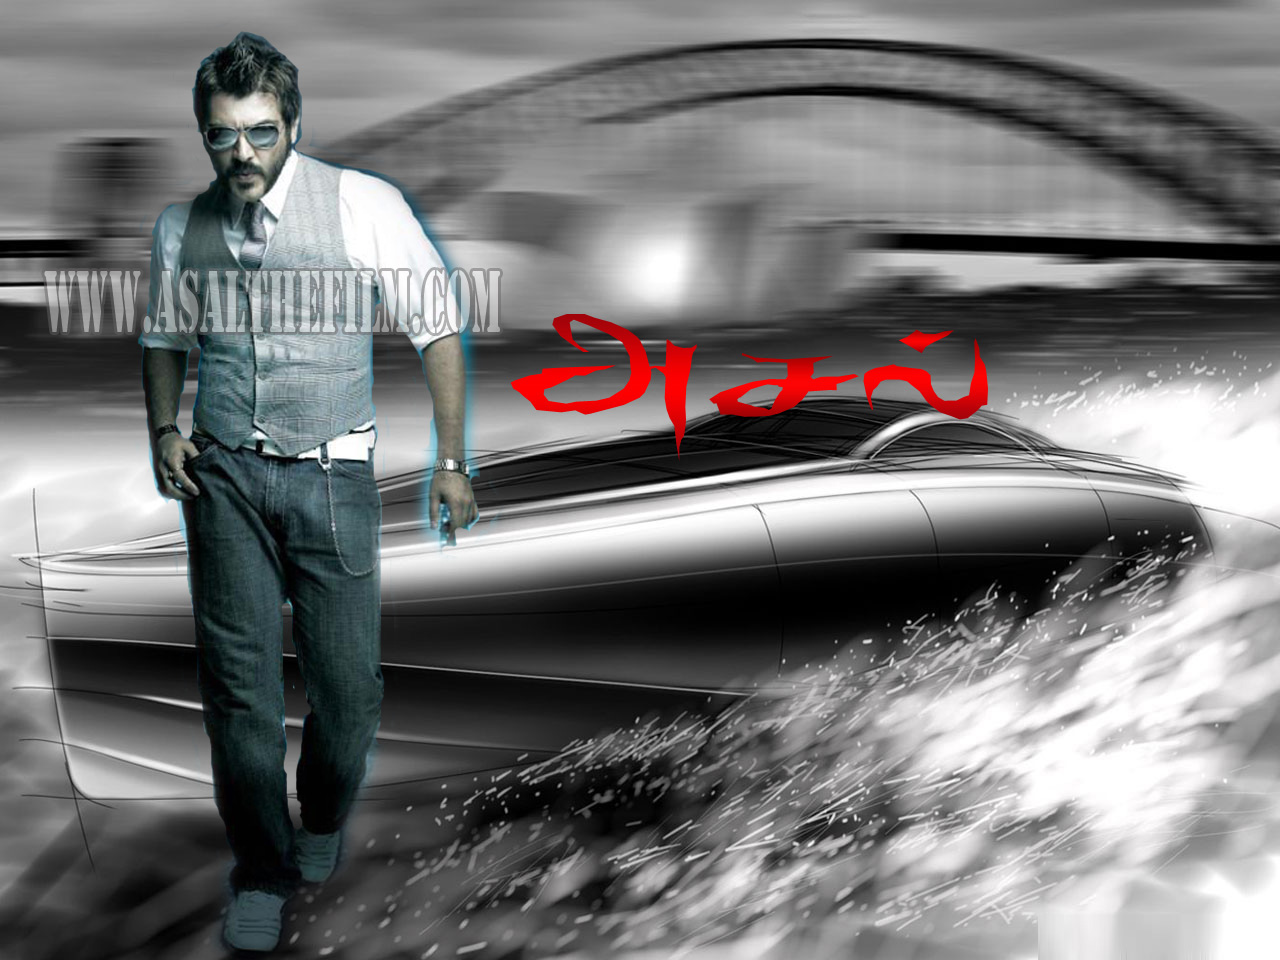 AJITH ASAL POSTER,PC WALLPAPER